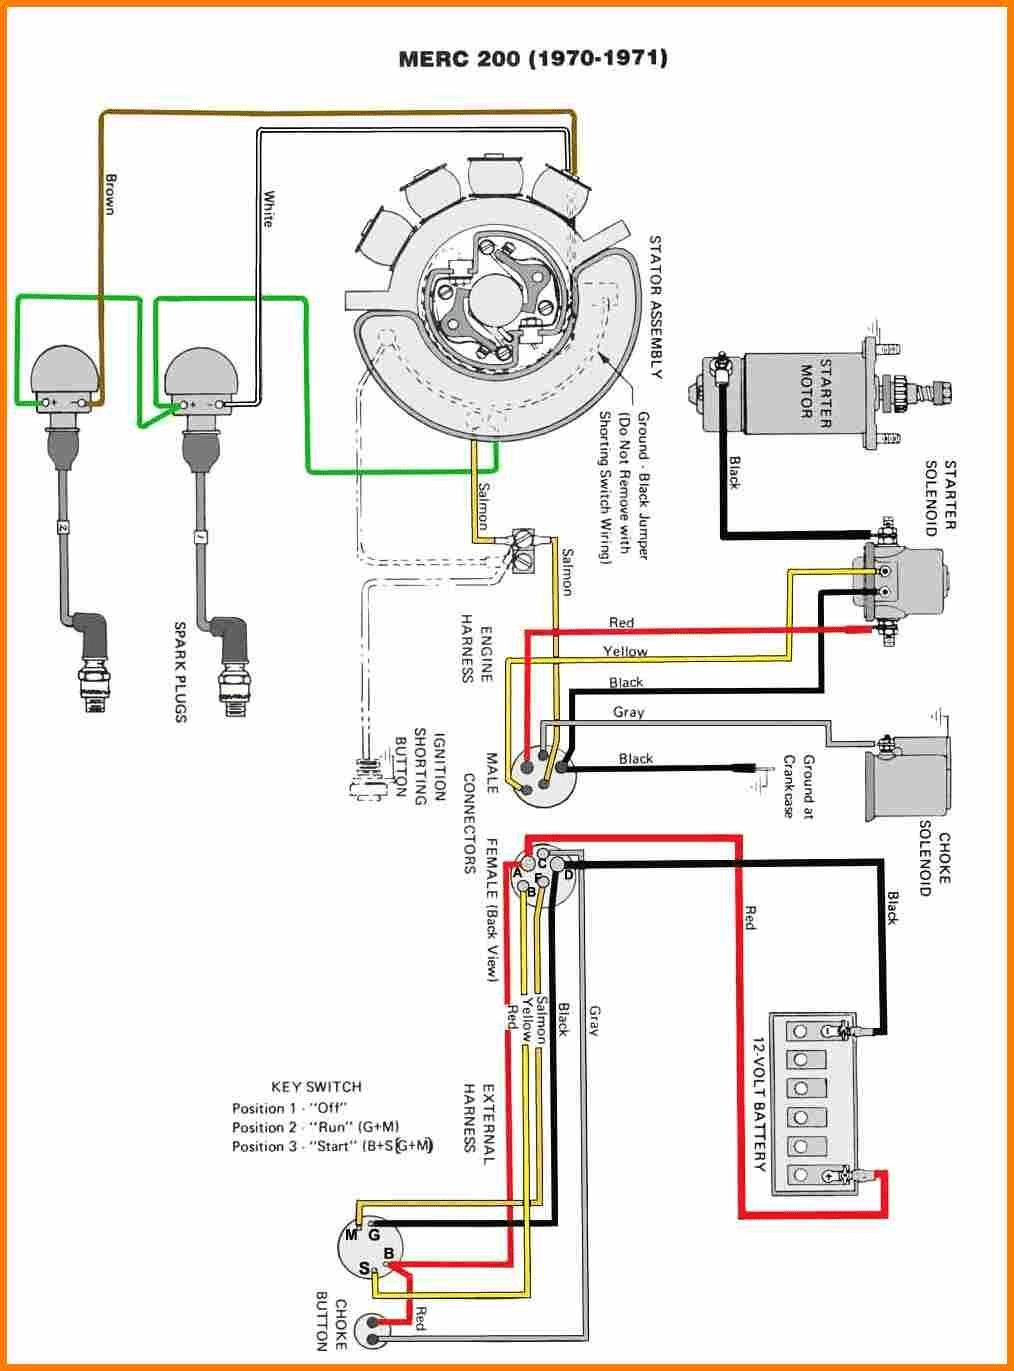 hight resolution of mercury outboard wiring diagram mercury outboard wiring diagram inspirational yamaha 703 remote control wiring diagram